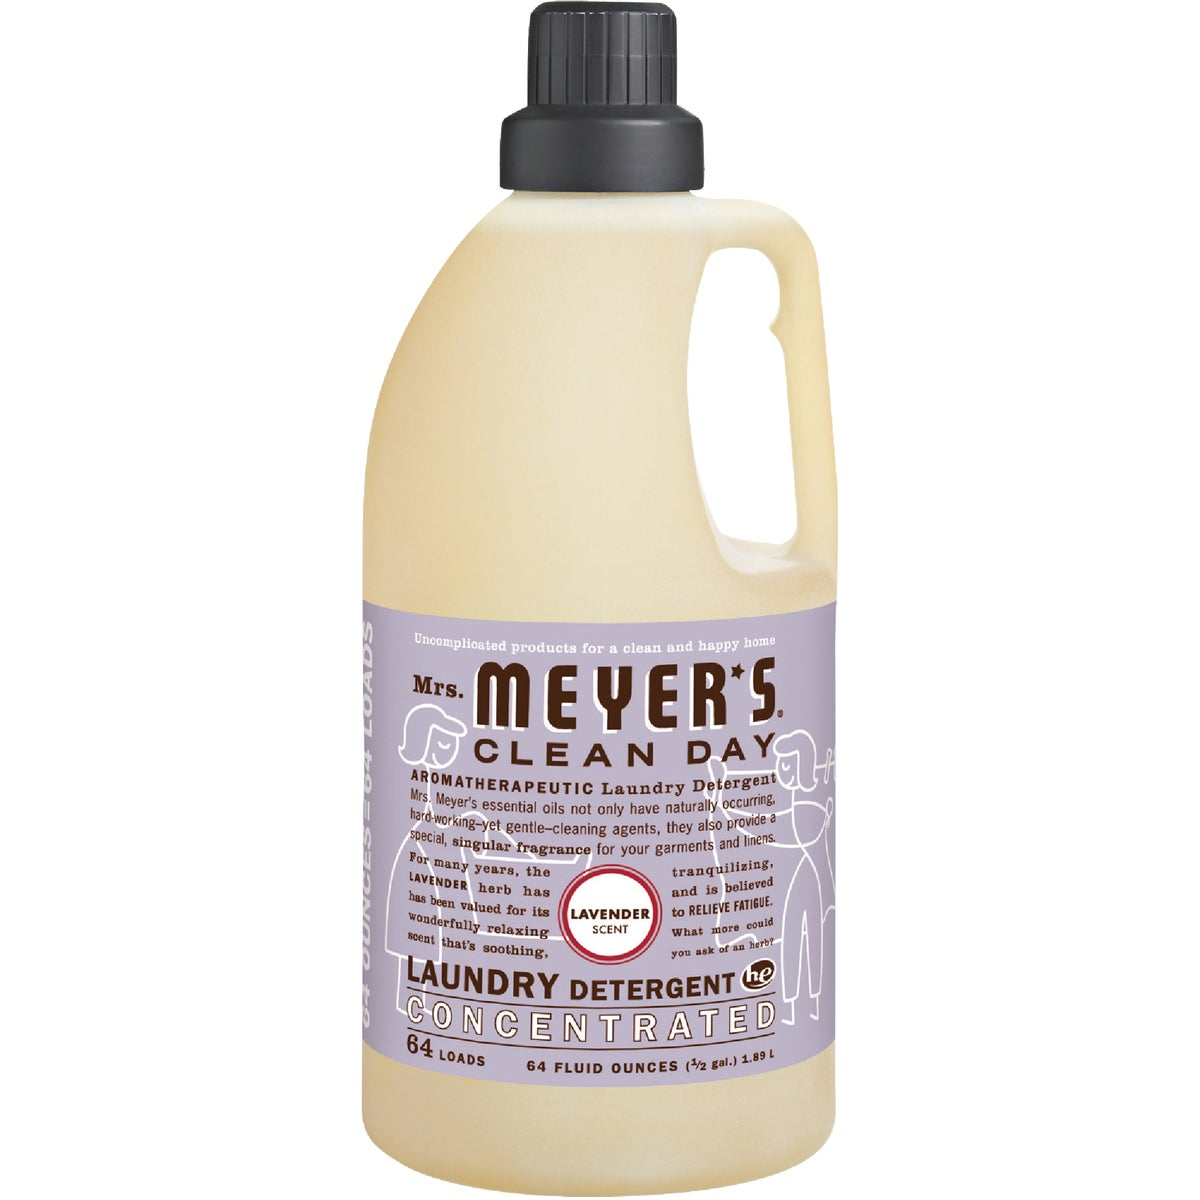 LAVNDR LAUNDRY DETERGENT - 14531 by Mrs Meyers Clean Day